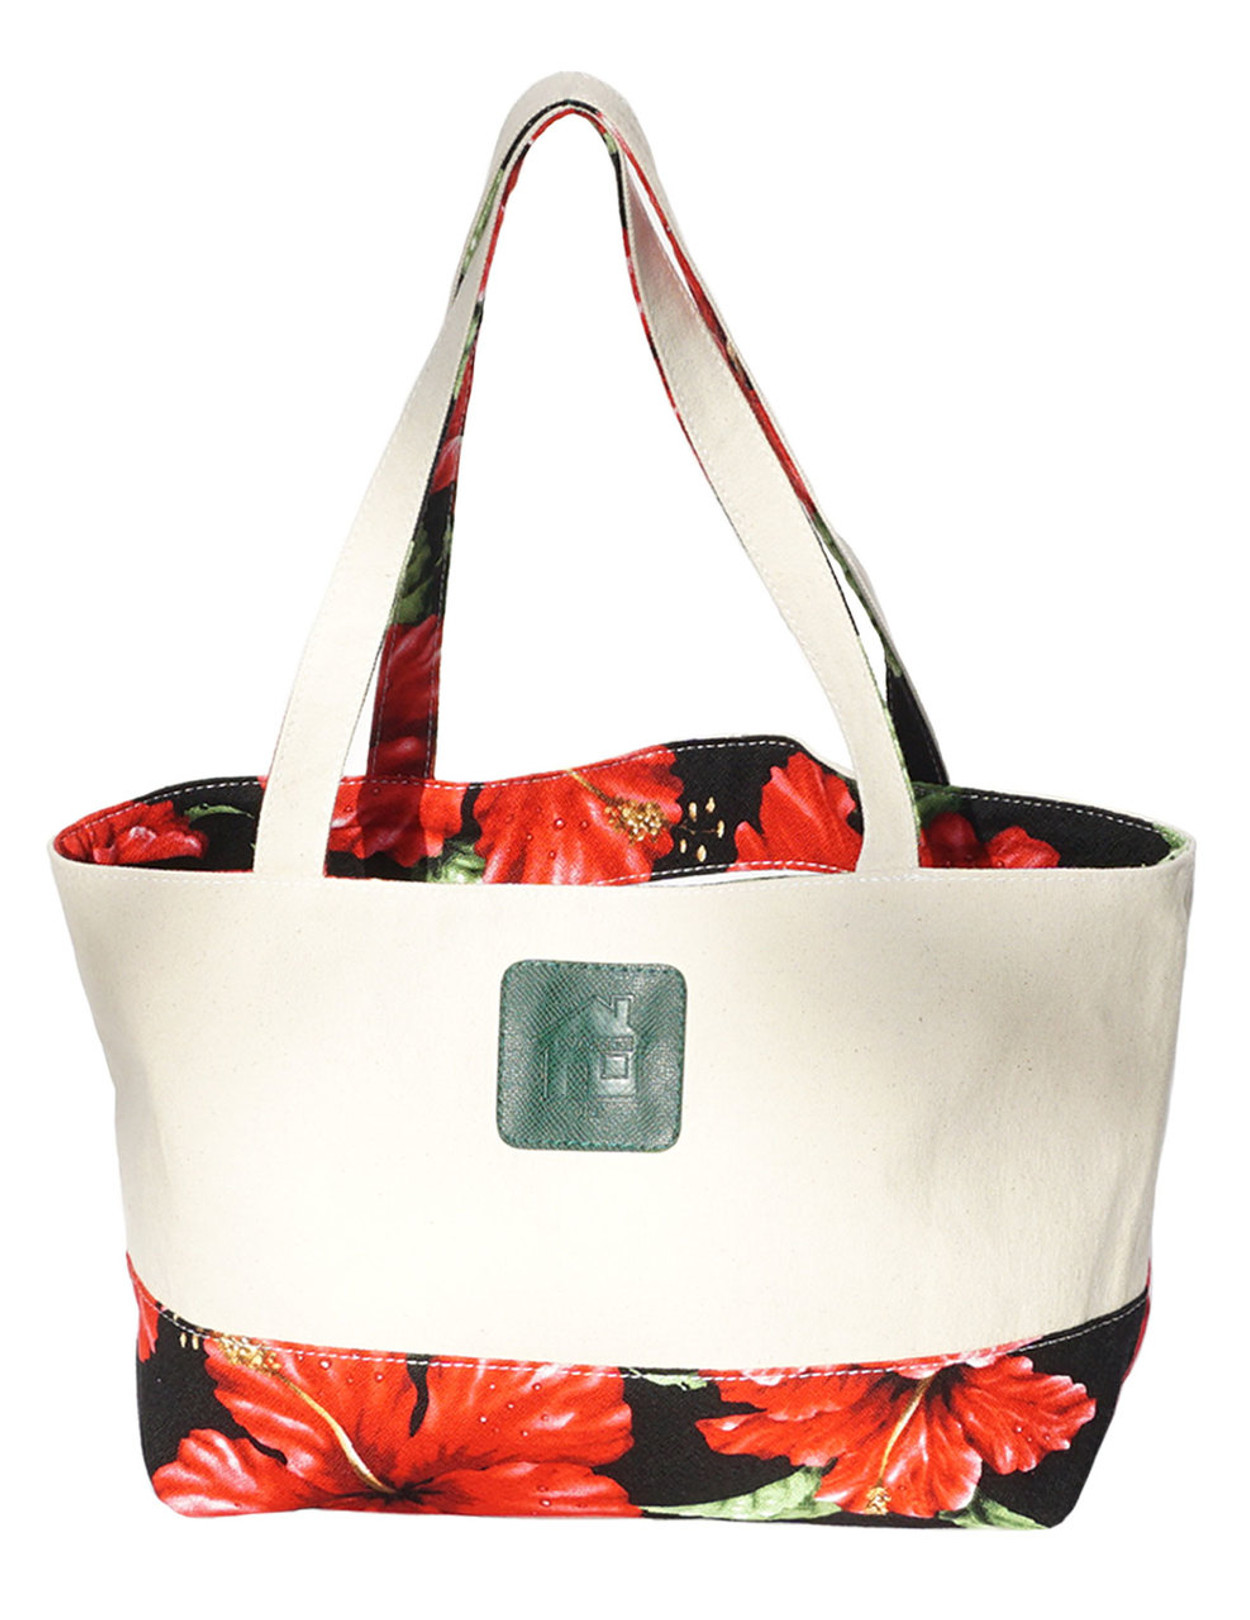 03754d5c2a Large Reversible Black Tote Bag Designer Red Hibiscus Water Resistance  Printed Canvas and Dobby Cotton Convenient